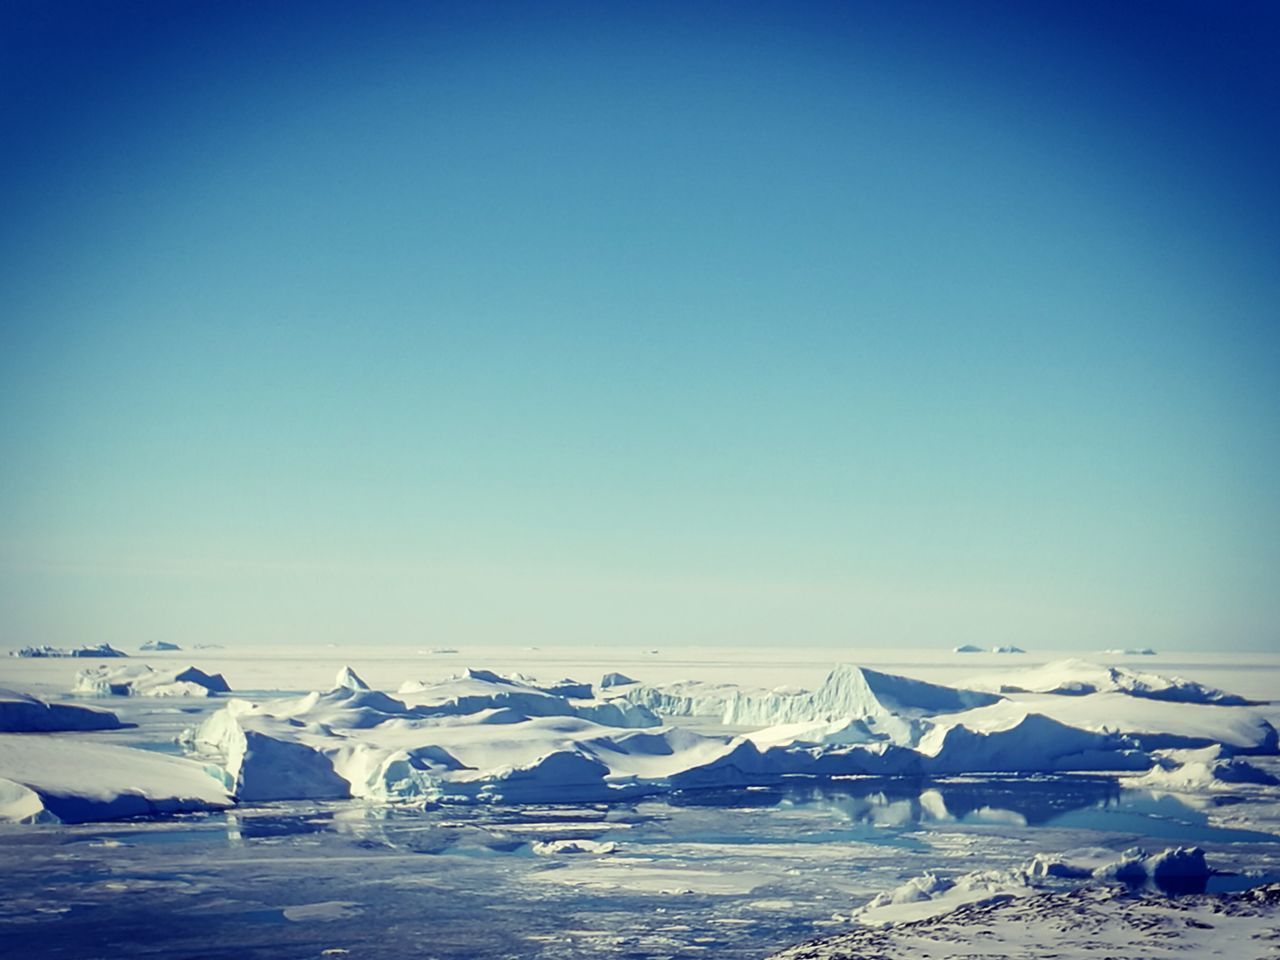 cold temperature, clear sky, copy space, blue, winter, ice, snow, frozen, no people, outdoors, nature, water, day, scenics, glacier, mountain, beauty in nature, iceberg, sea, sky, salt - mineral